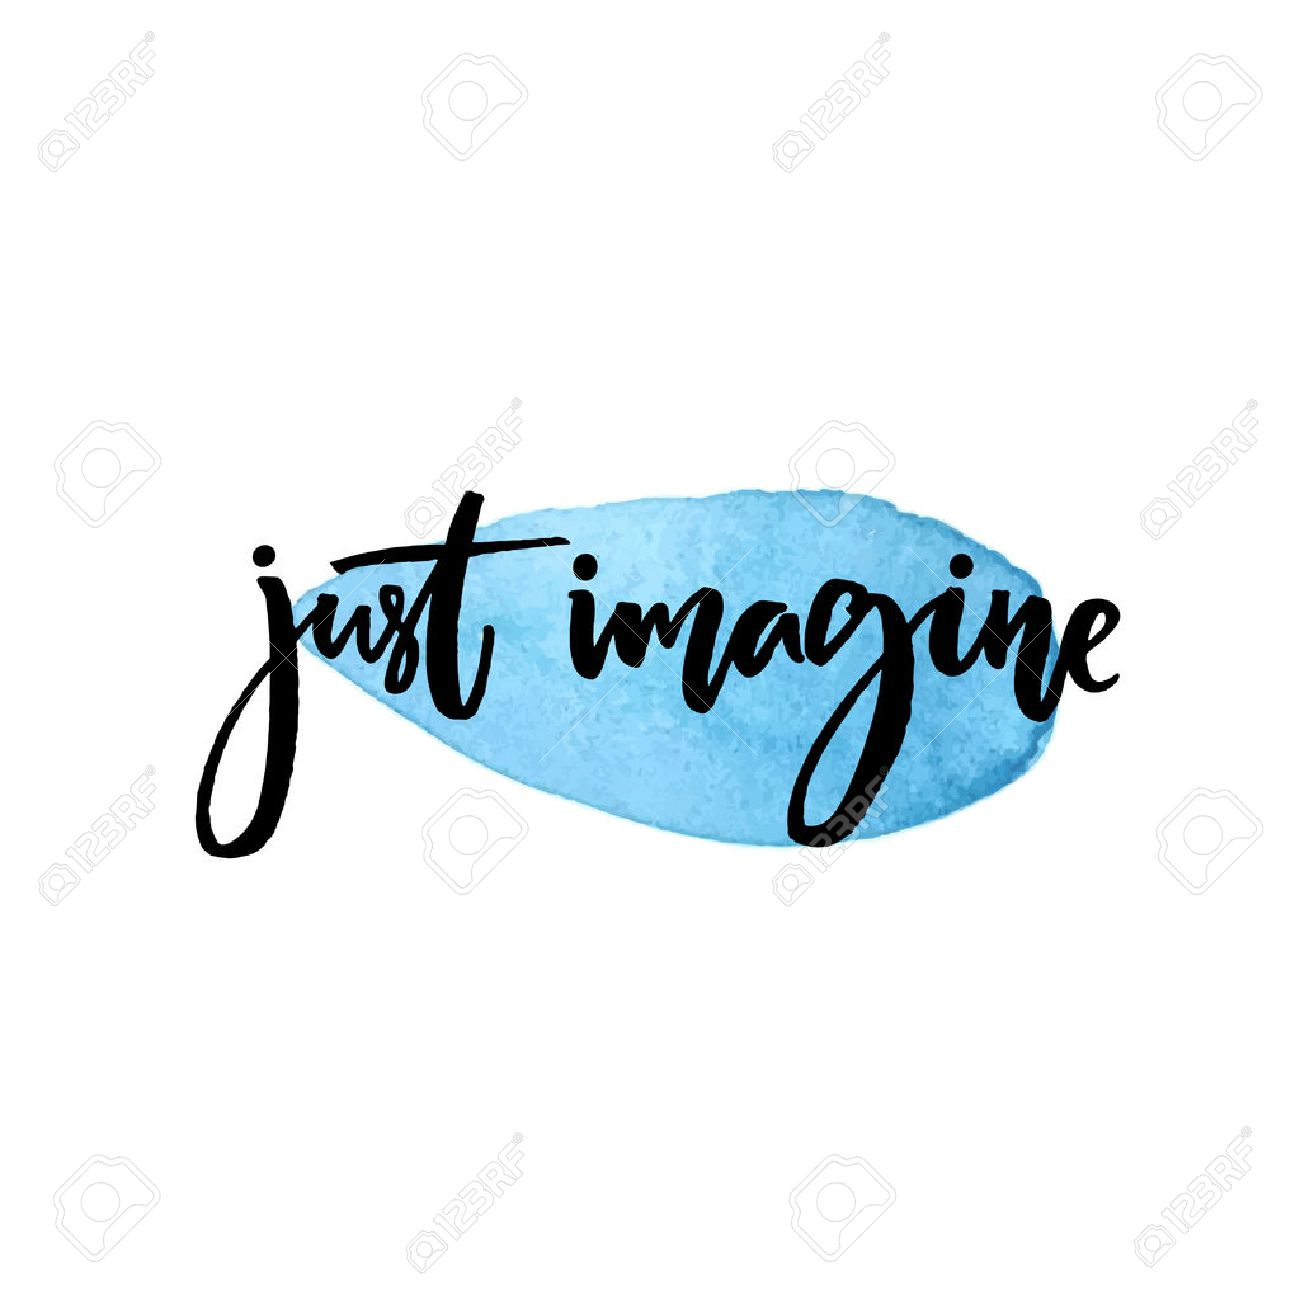 Just imagine. Inspirational quote about dream, modern calligraphy on blue watercolor drop - 59291055